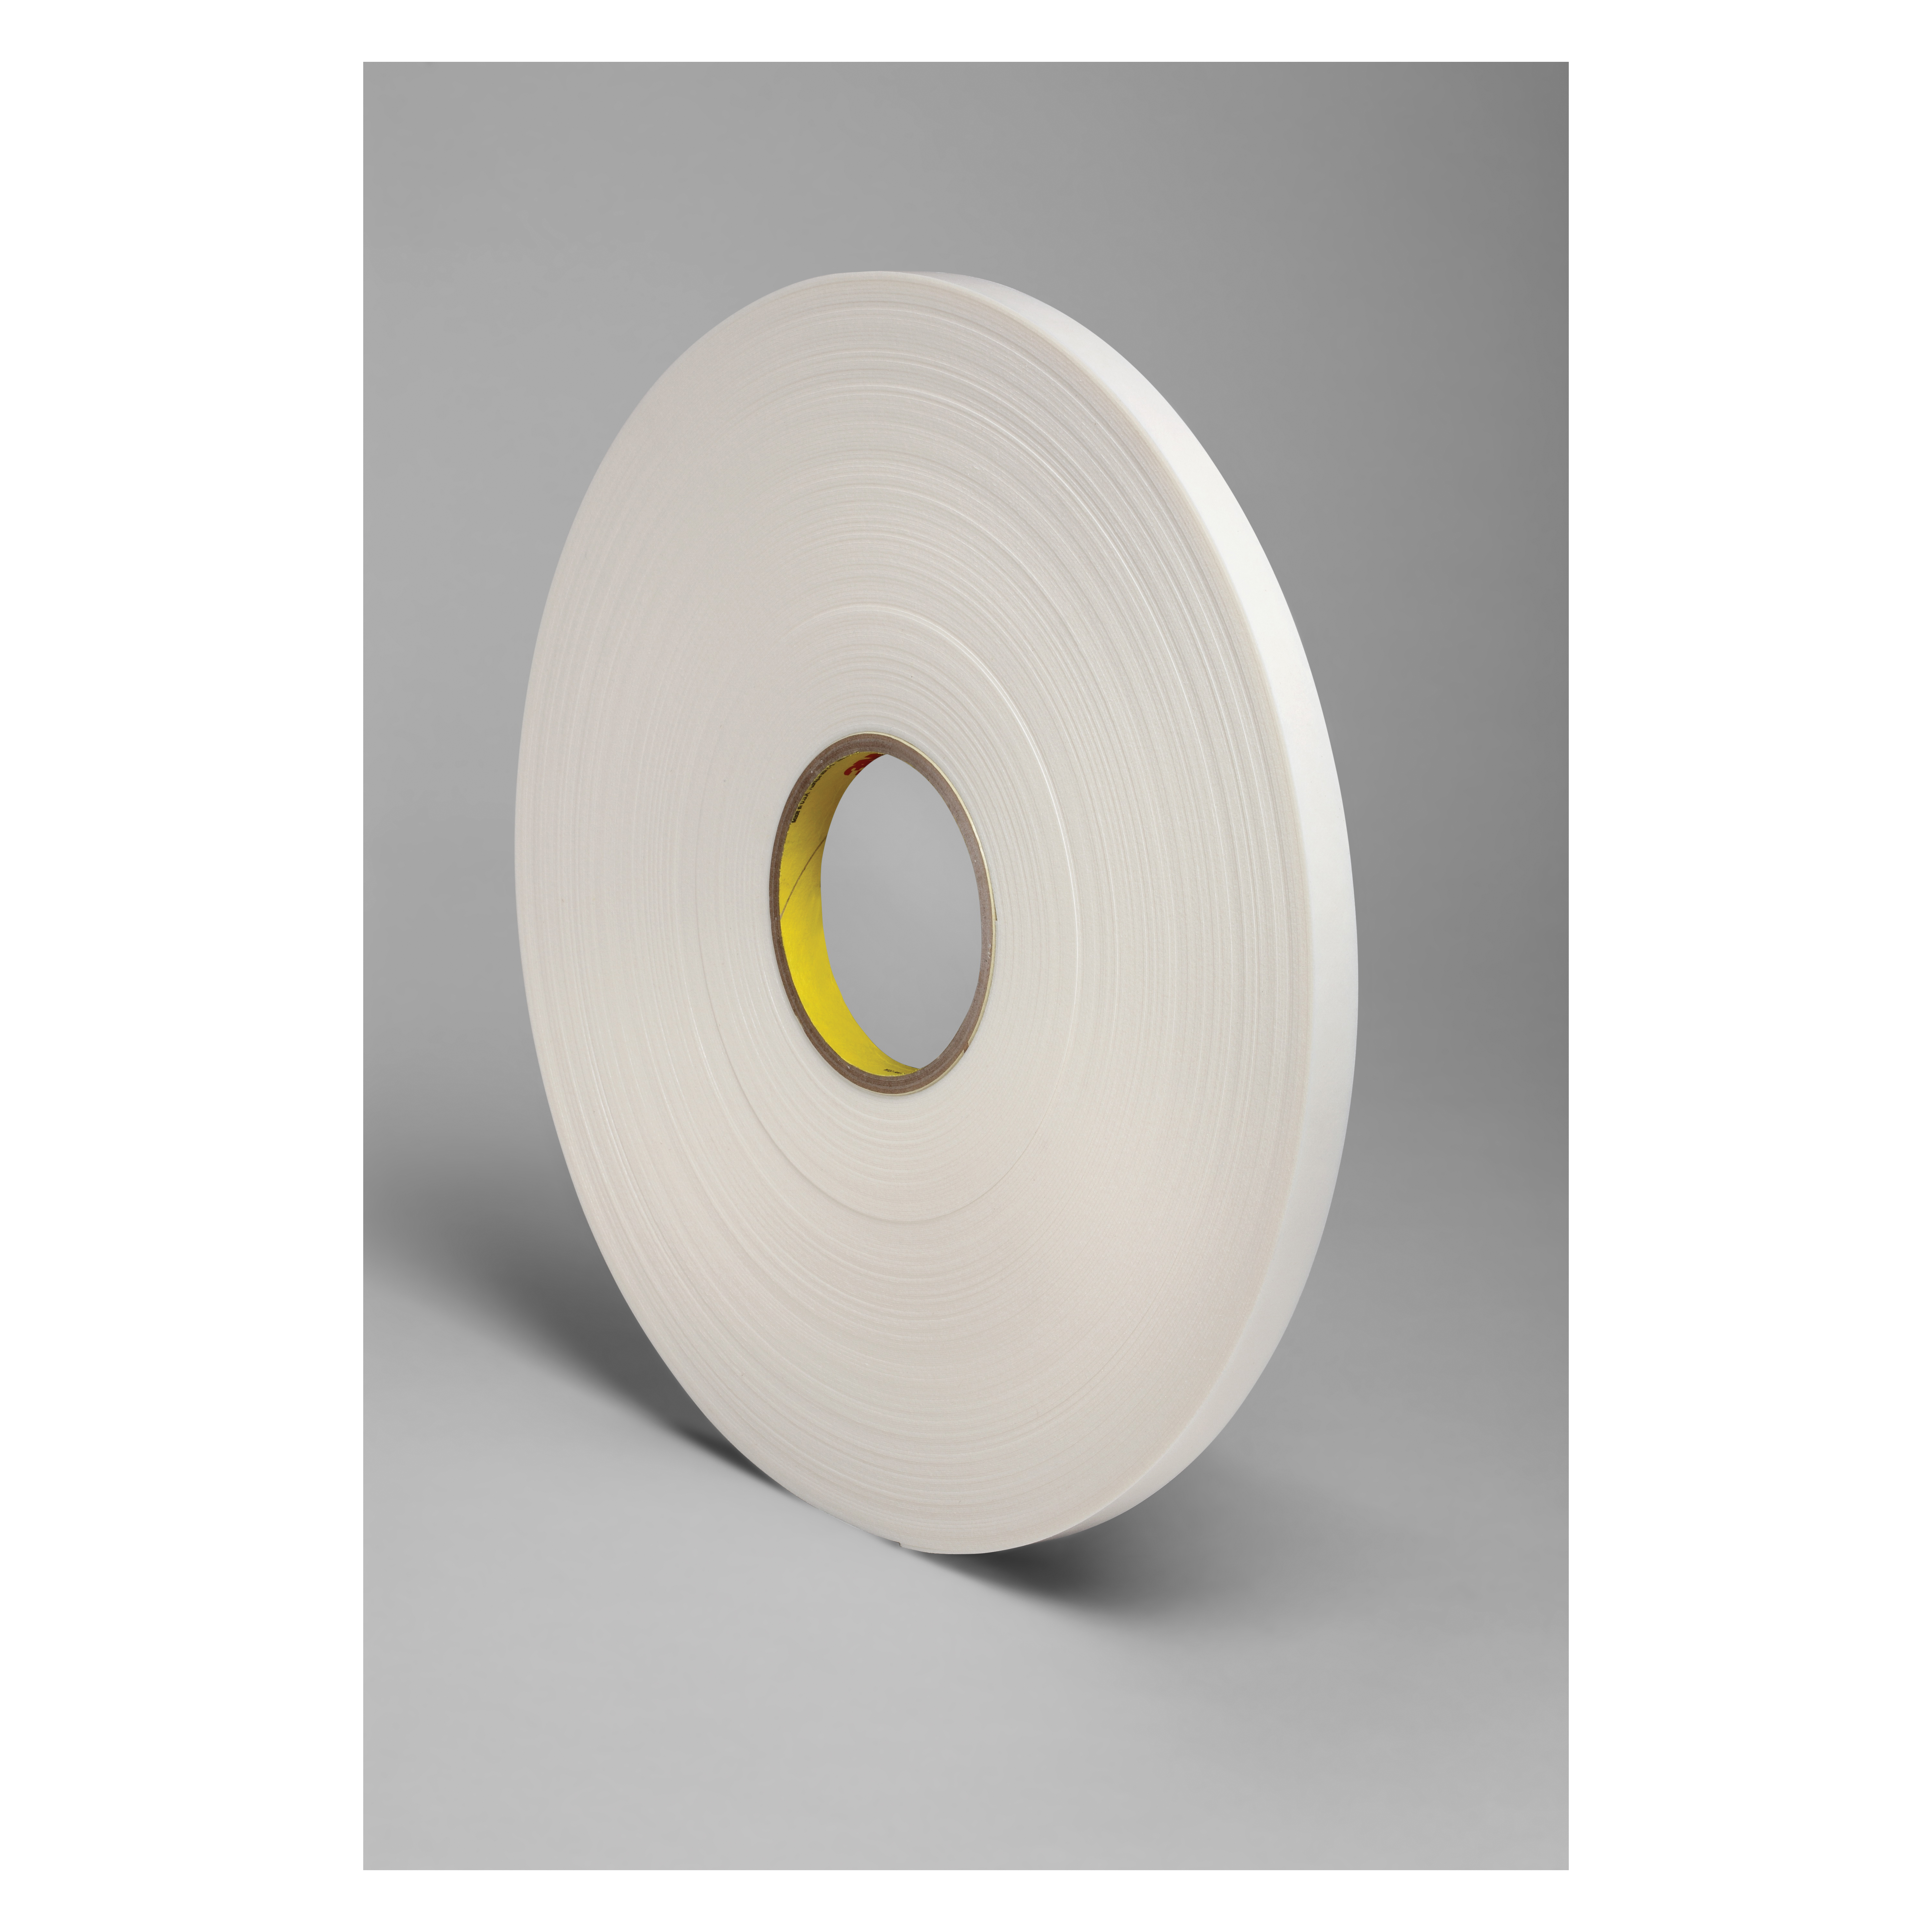 3M™ 021200-03406 Single Coated Foam Tape, 36 yd L x 1/2 in W, 125 mil THK, Acrylic Adhesive, Urethane Foam Backing, Natural